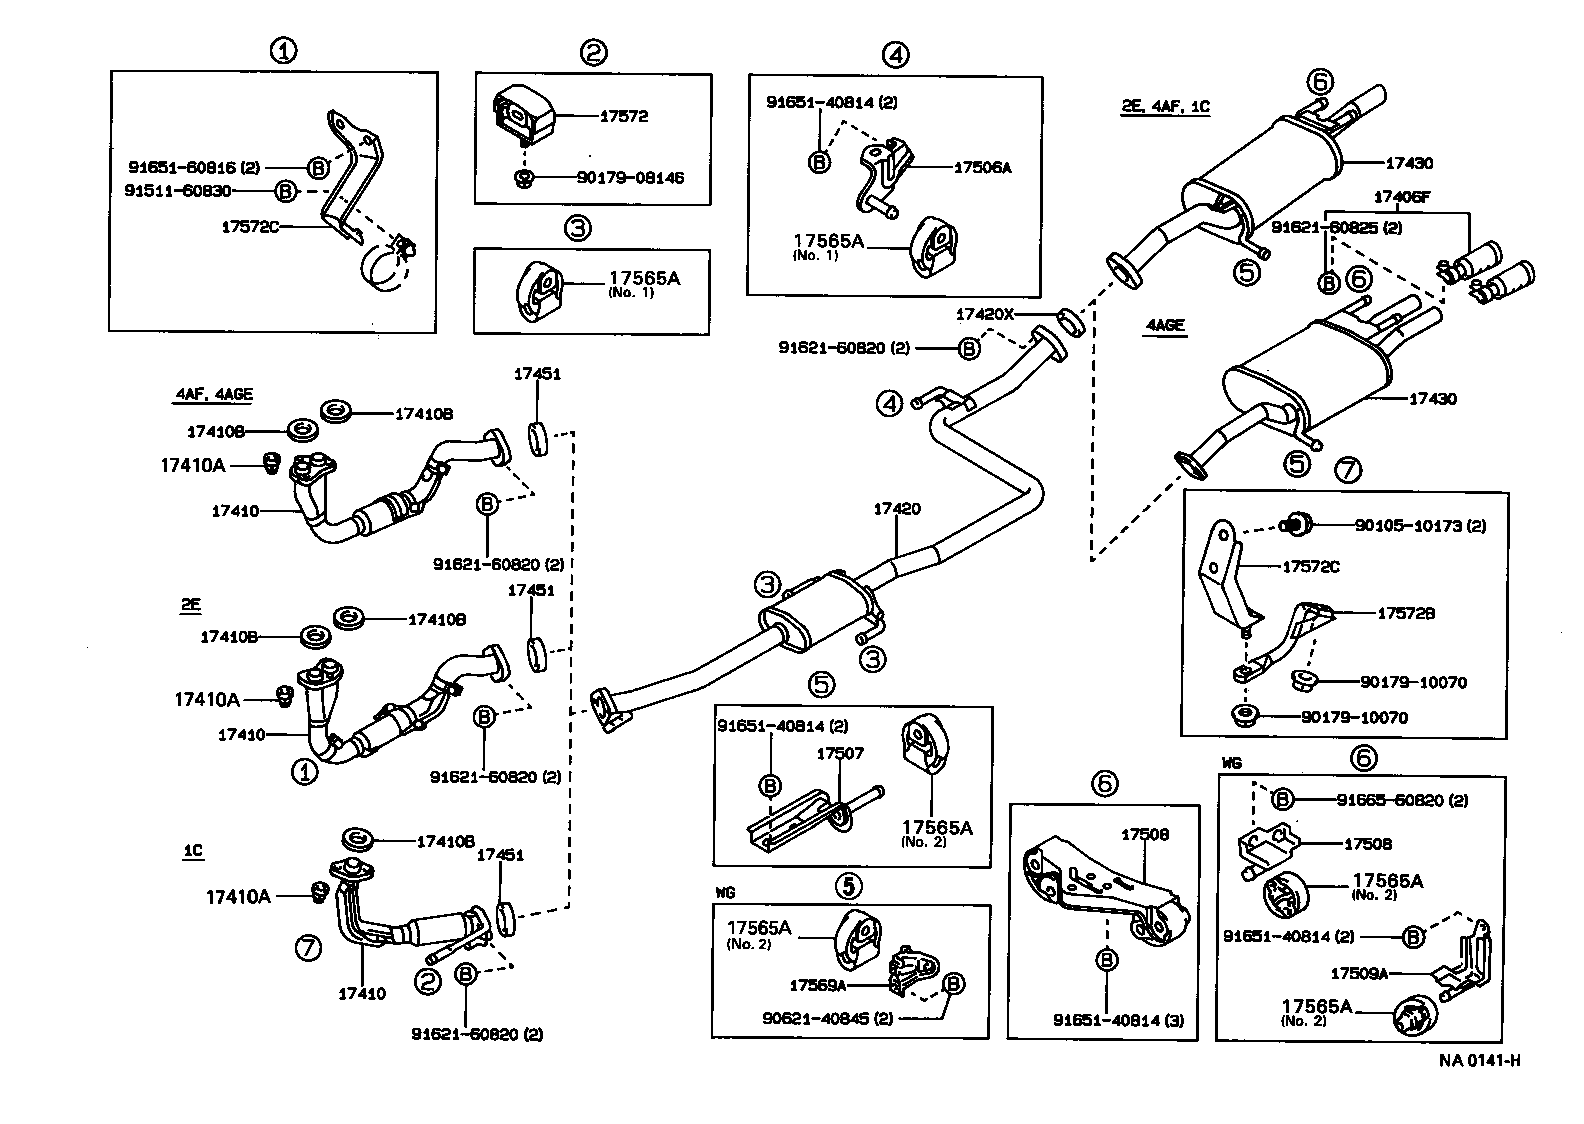 1999 toyota camry exhaust system diagram 2006 saturn vue parts 0f 1993 corolla